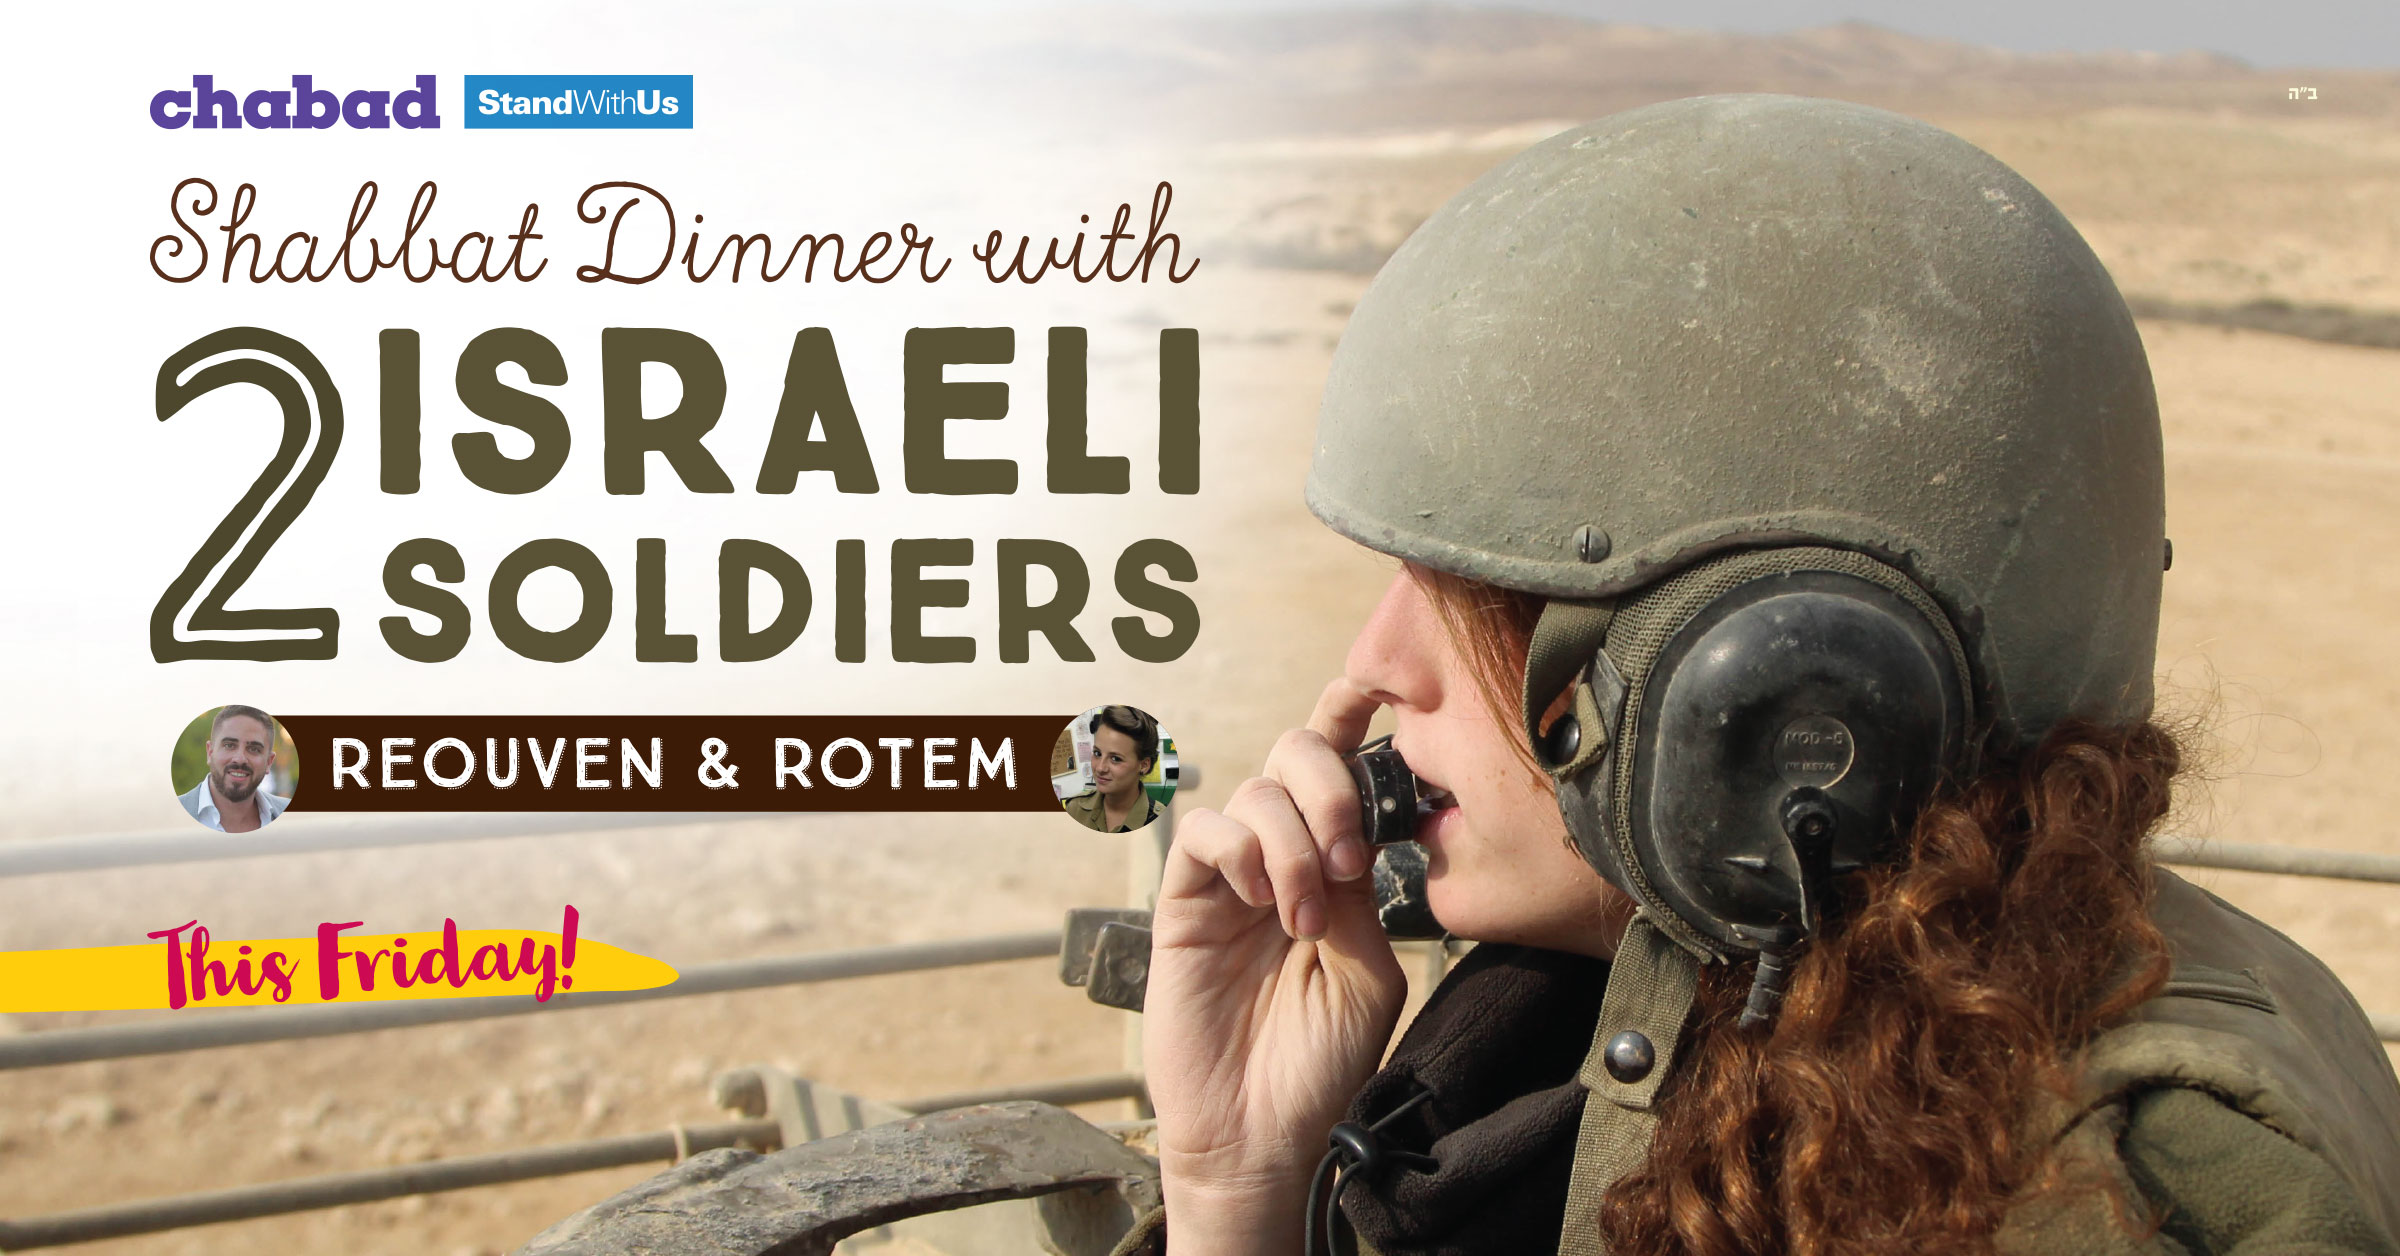 Shabbat-Dinner-with-2-Israeli-Soldiers---Image-for-FB.jpg